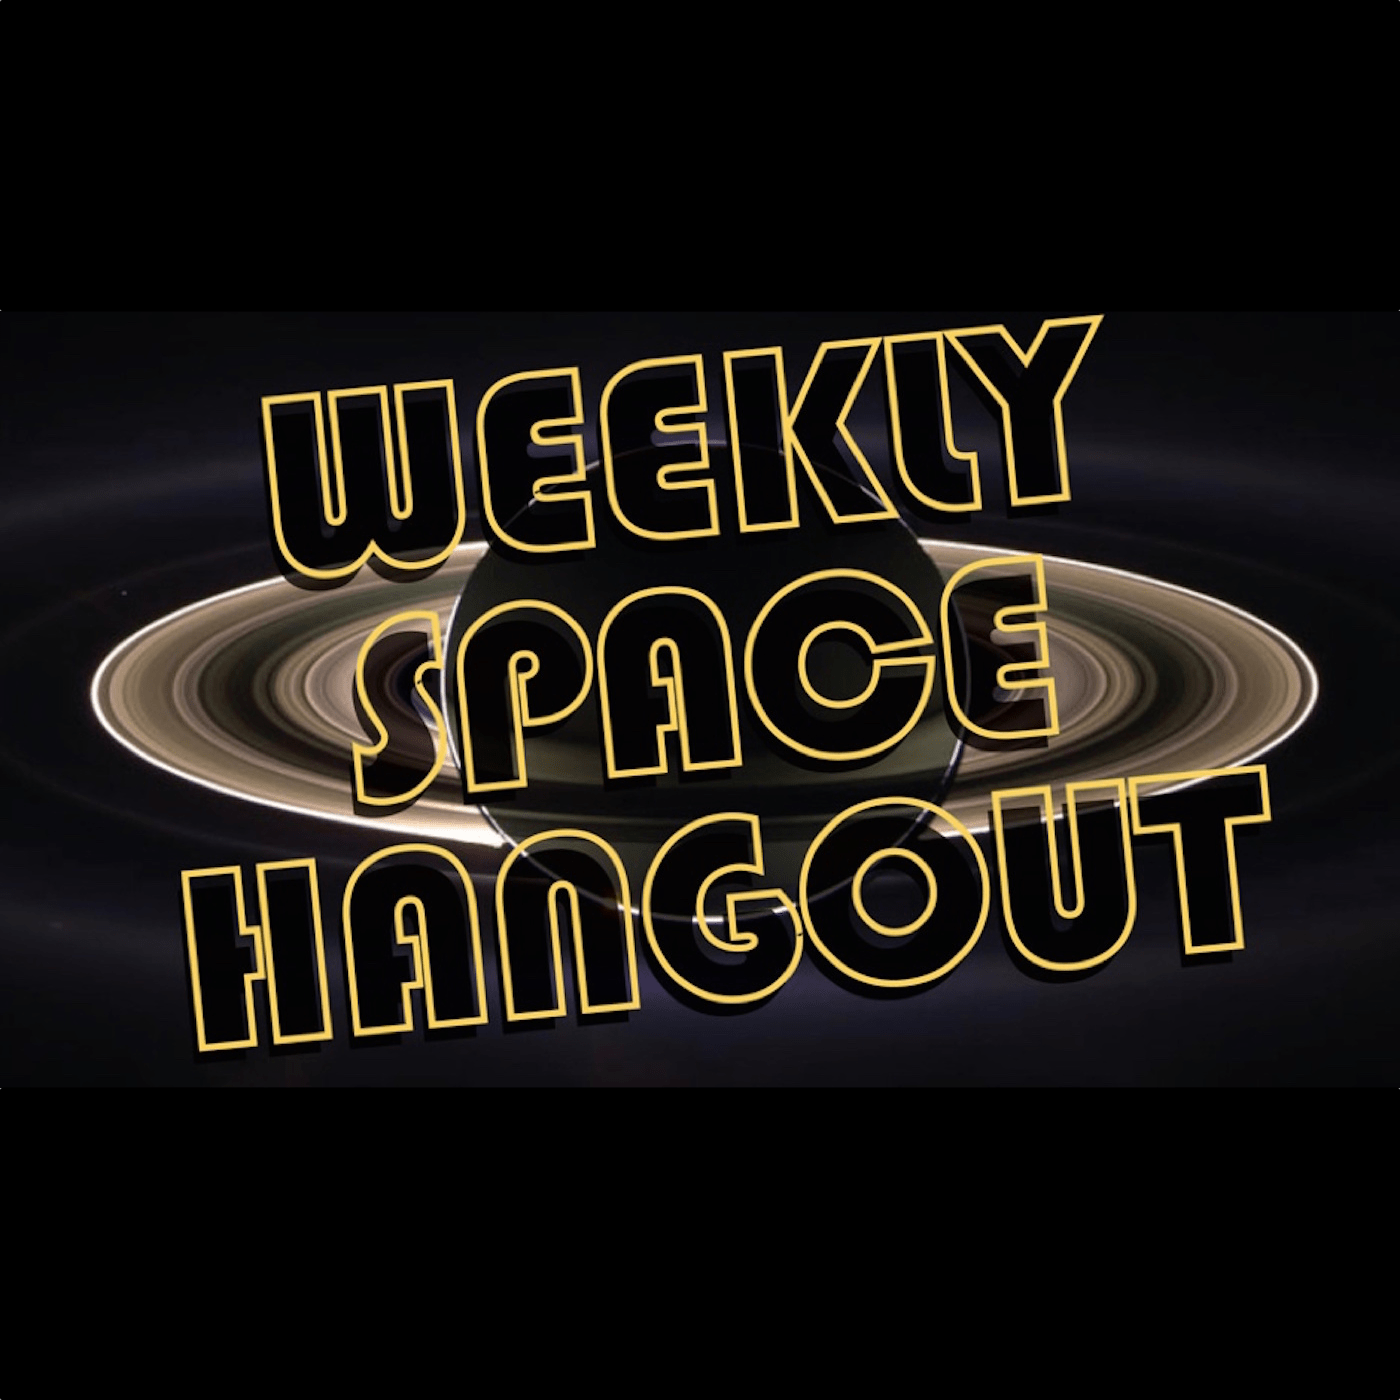 Weekly Space Hangout Audio